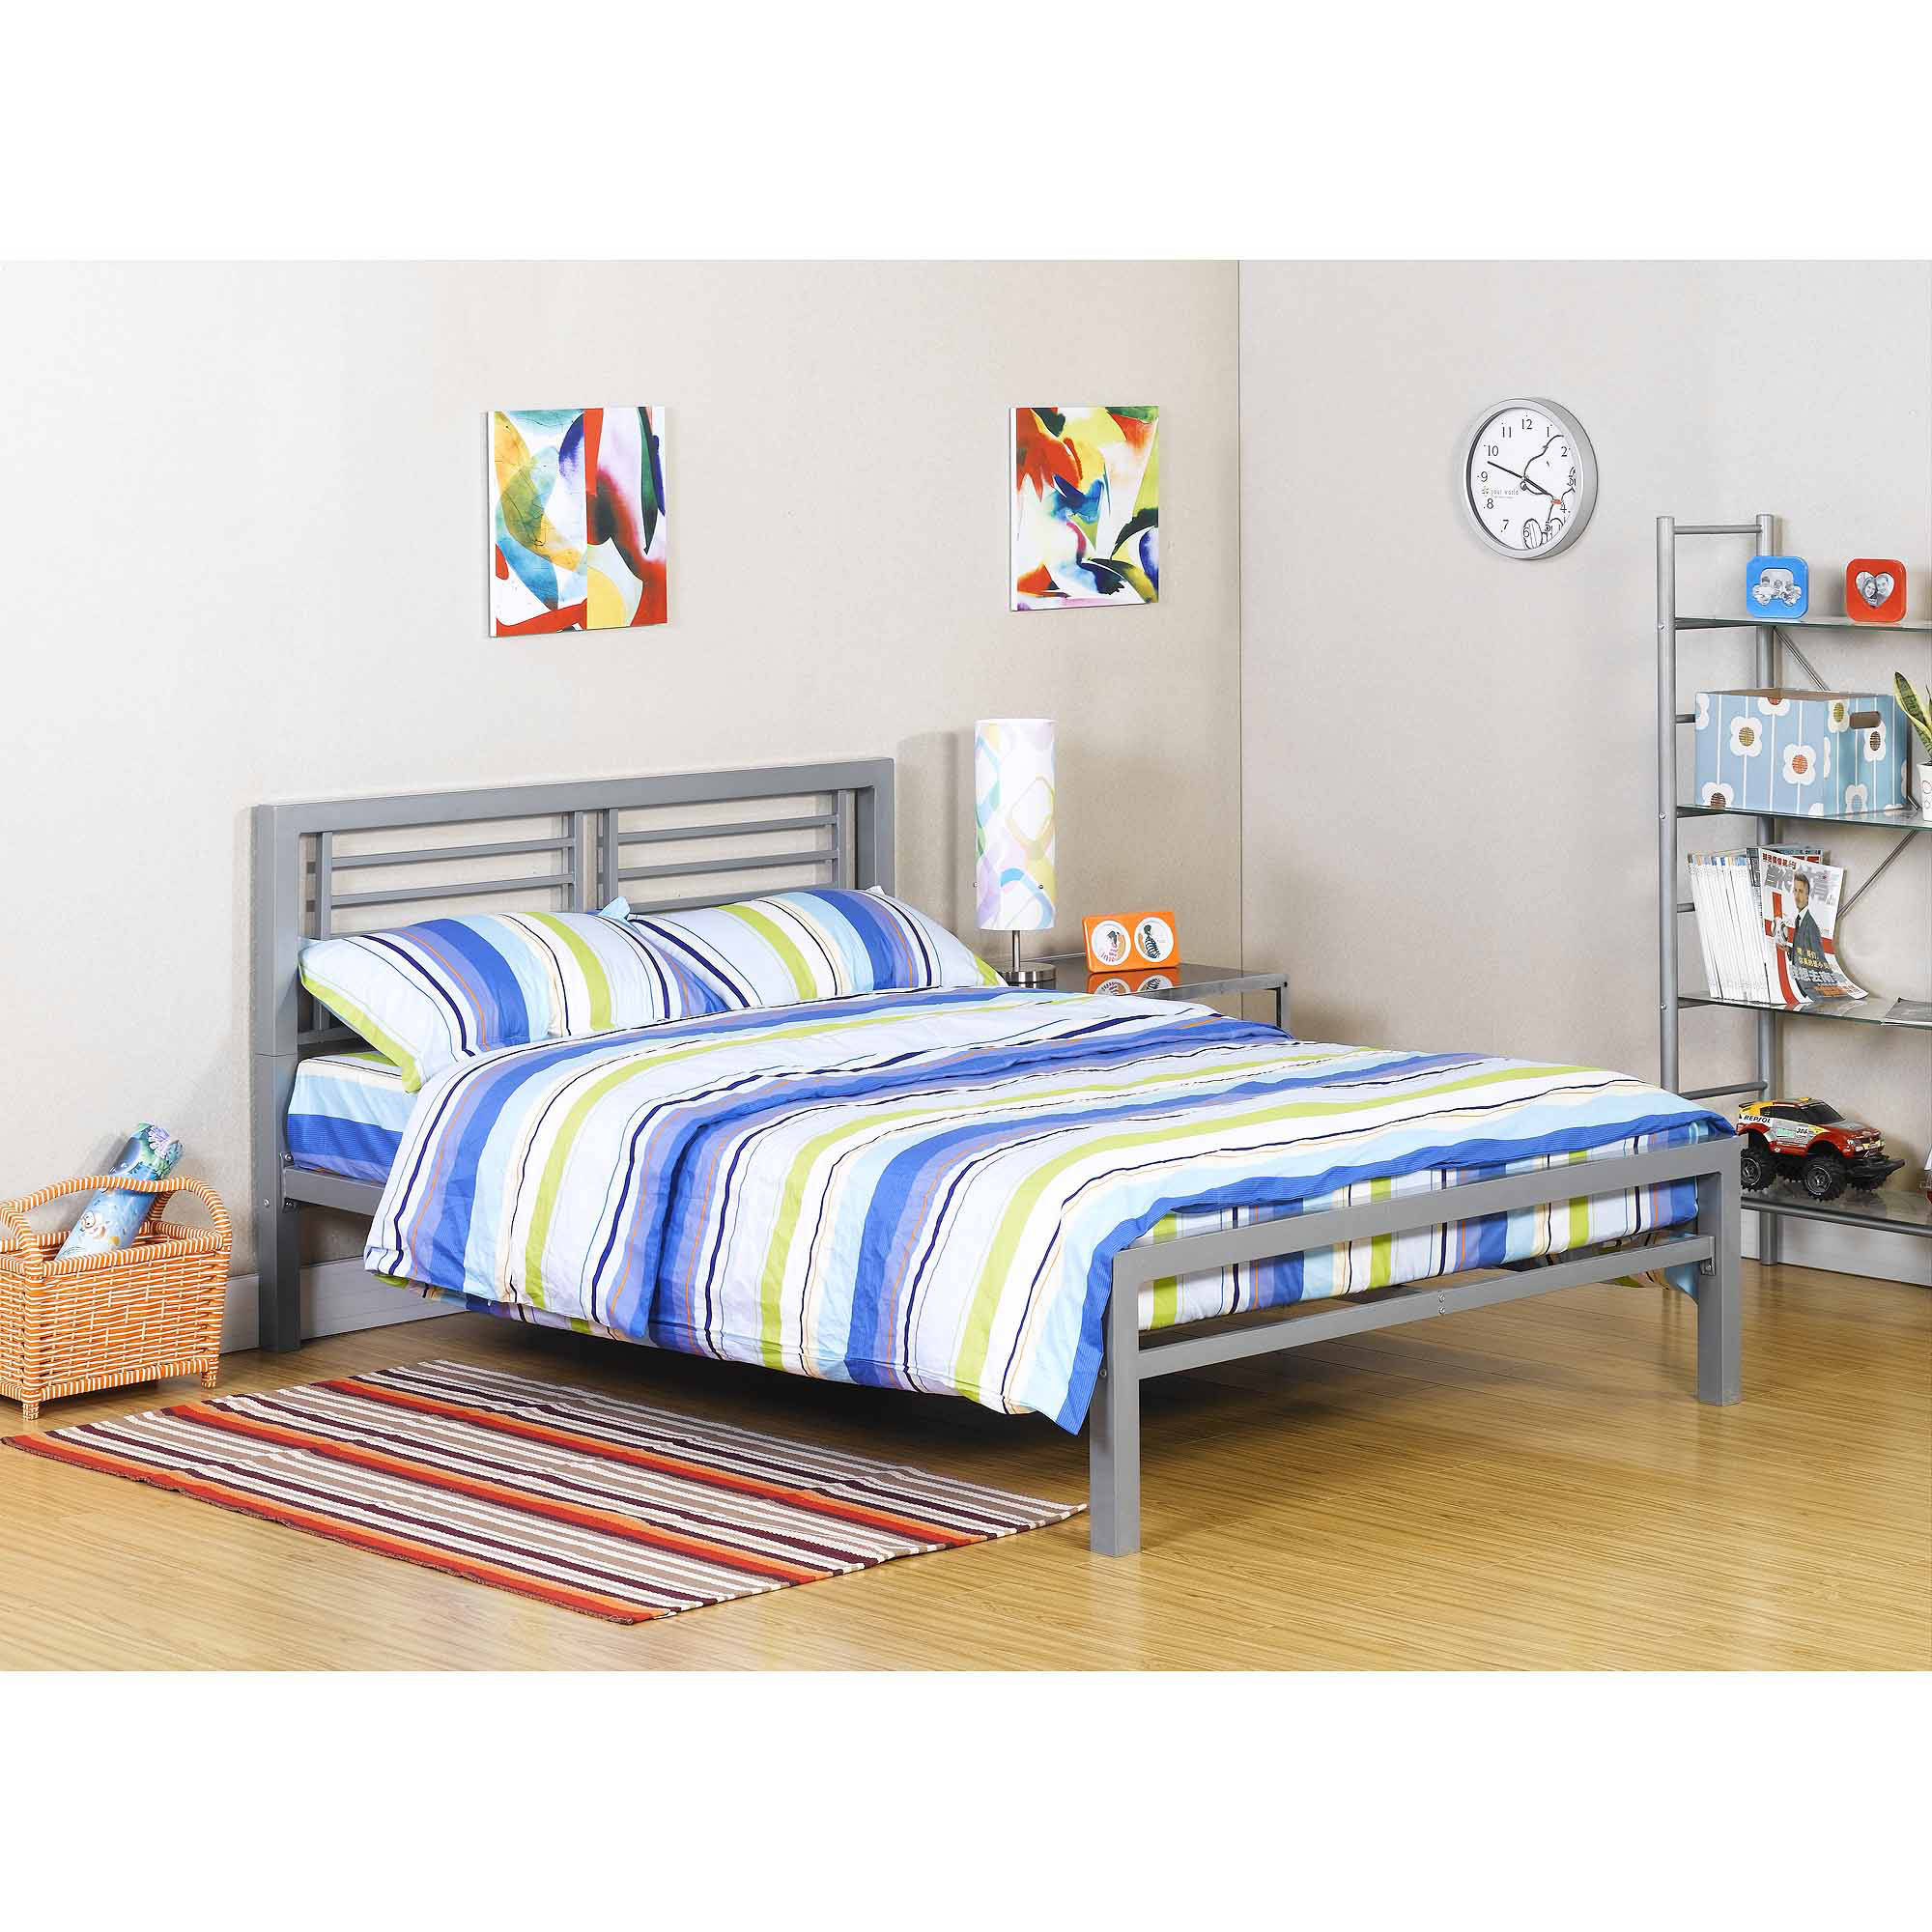 your zone metal full bed multiple colors - Bed